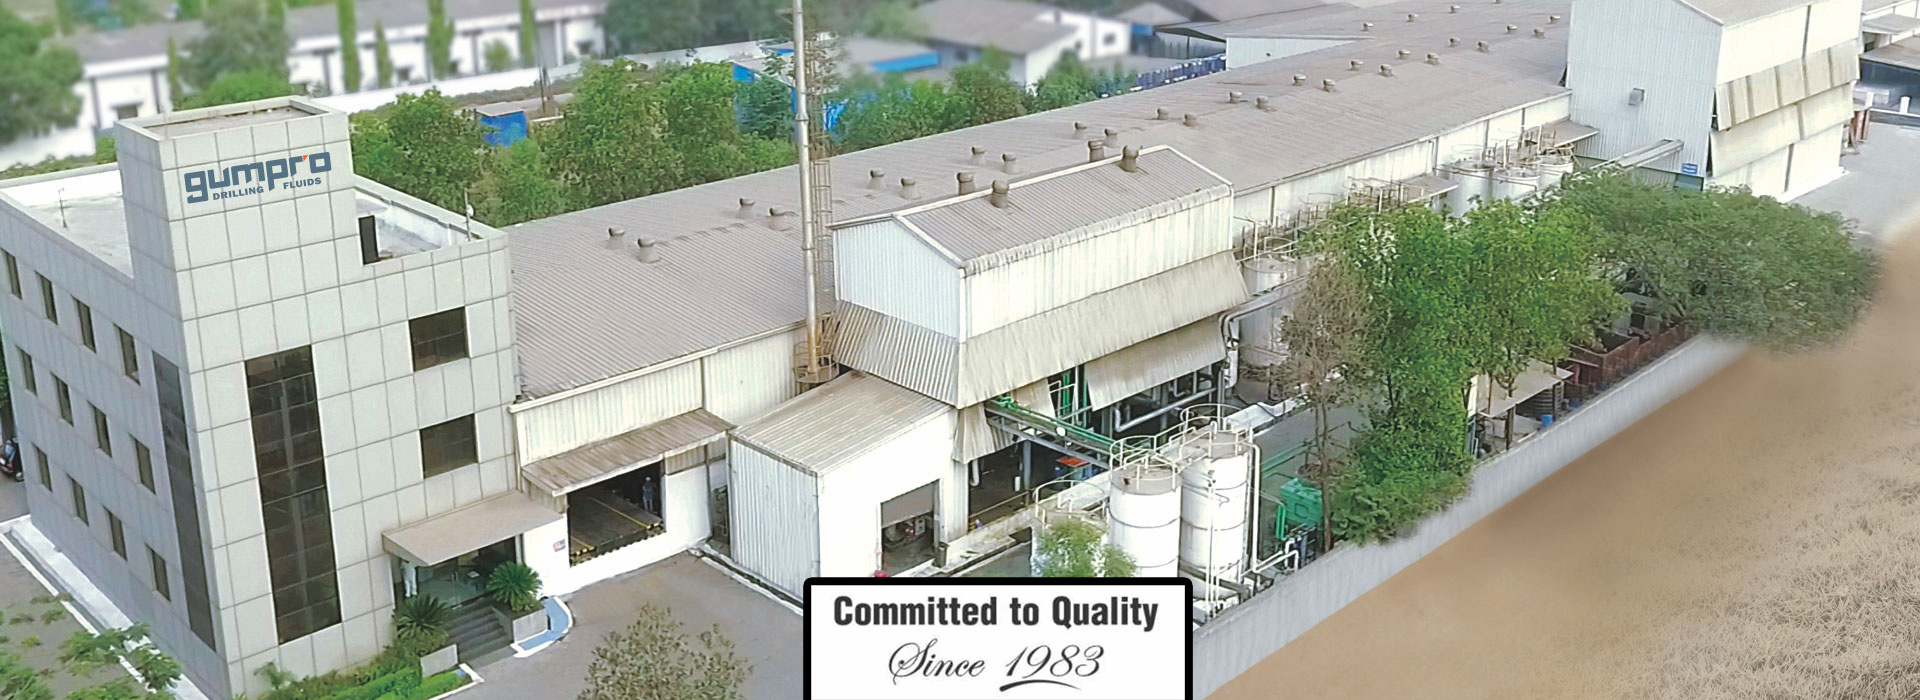 Manufacturing Drilling Fluid Additives since 1983